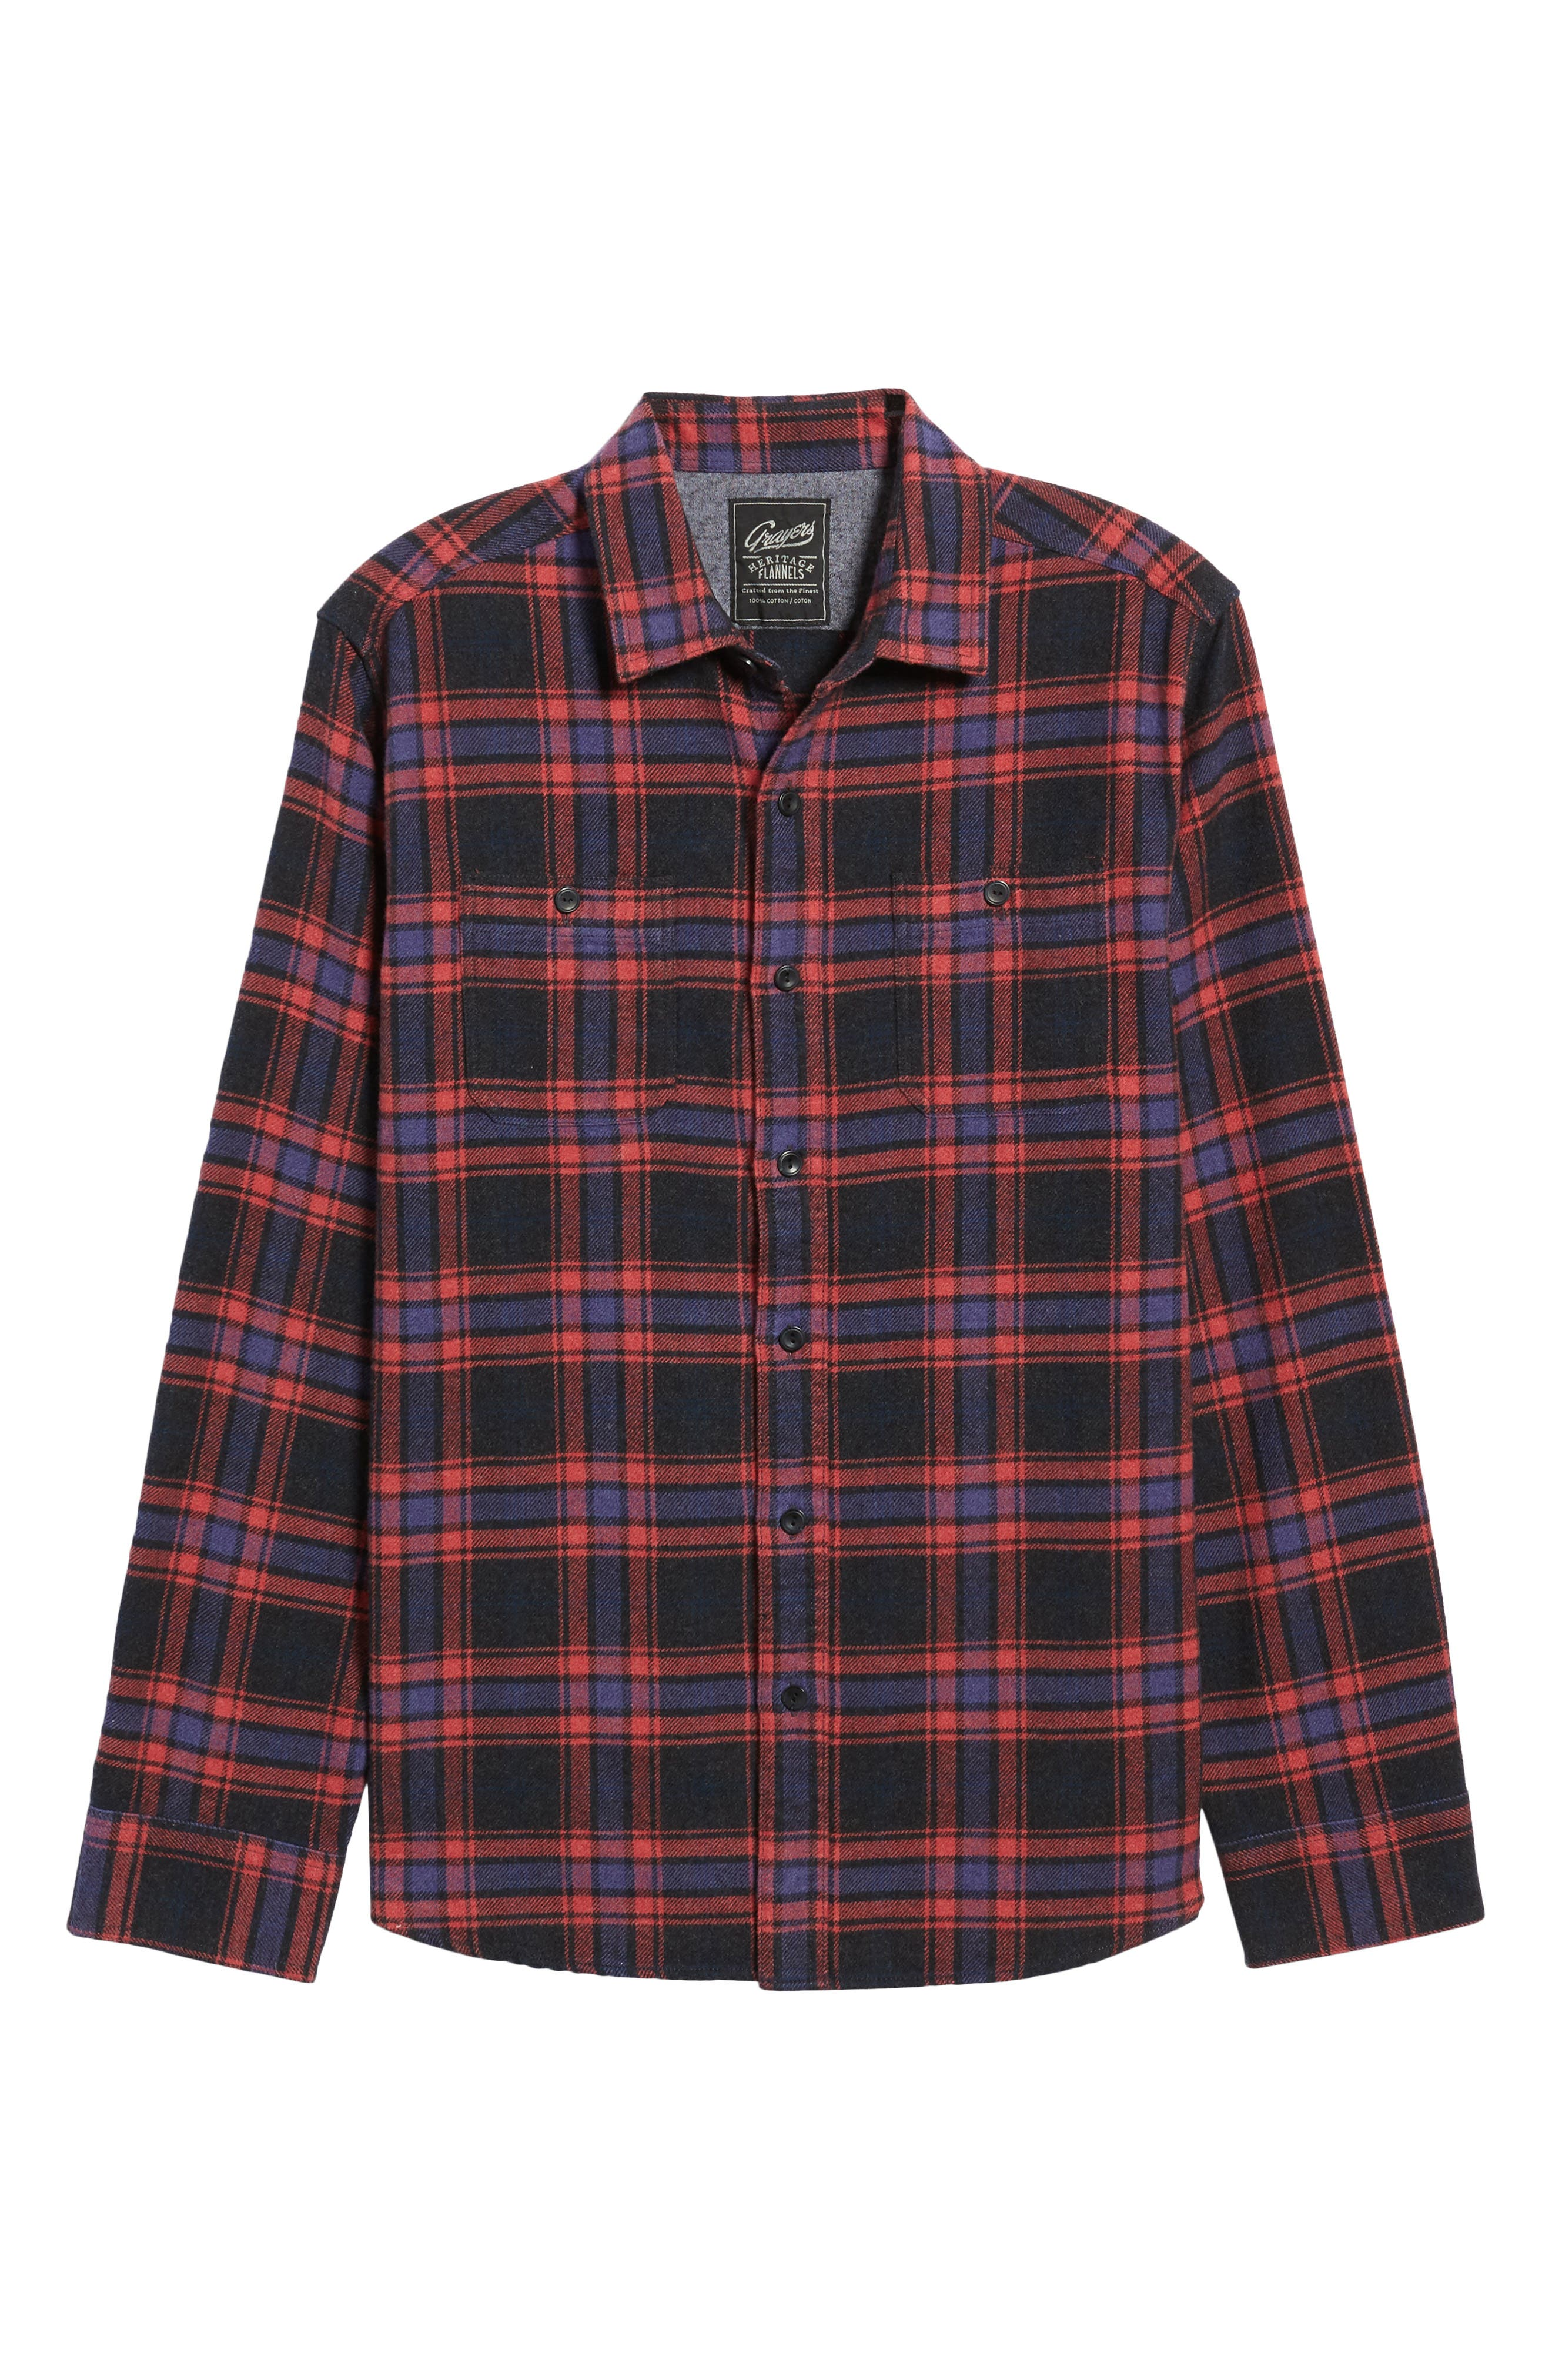 Chaucer Heritage Flannel Shirt,                             Alternate thumbnail 6, color,